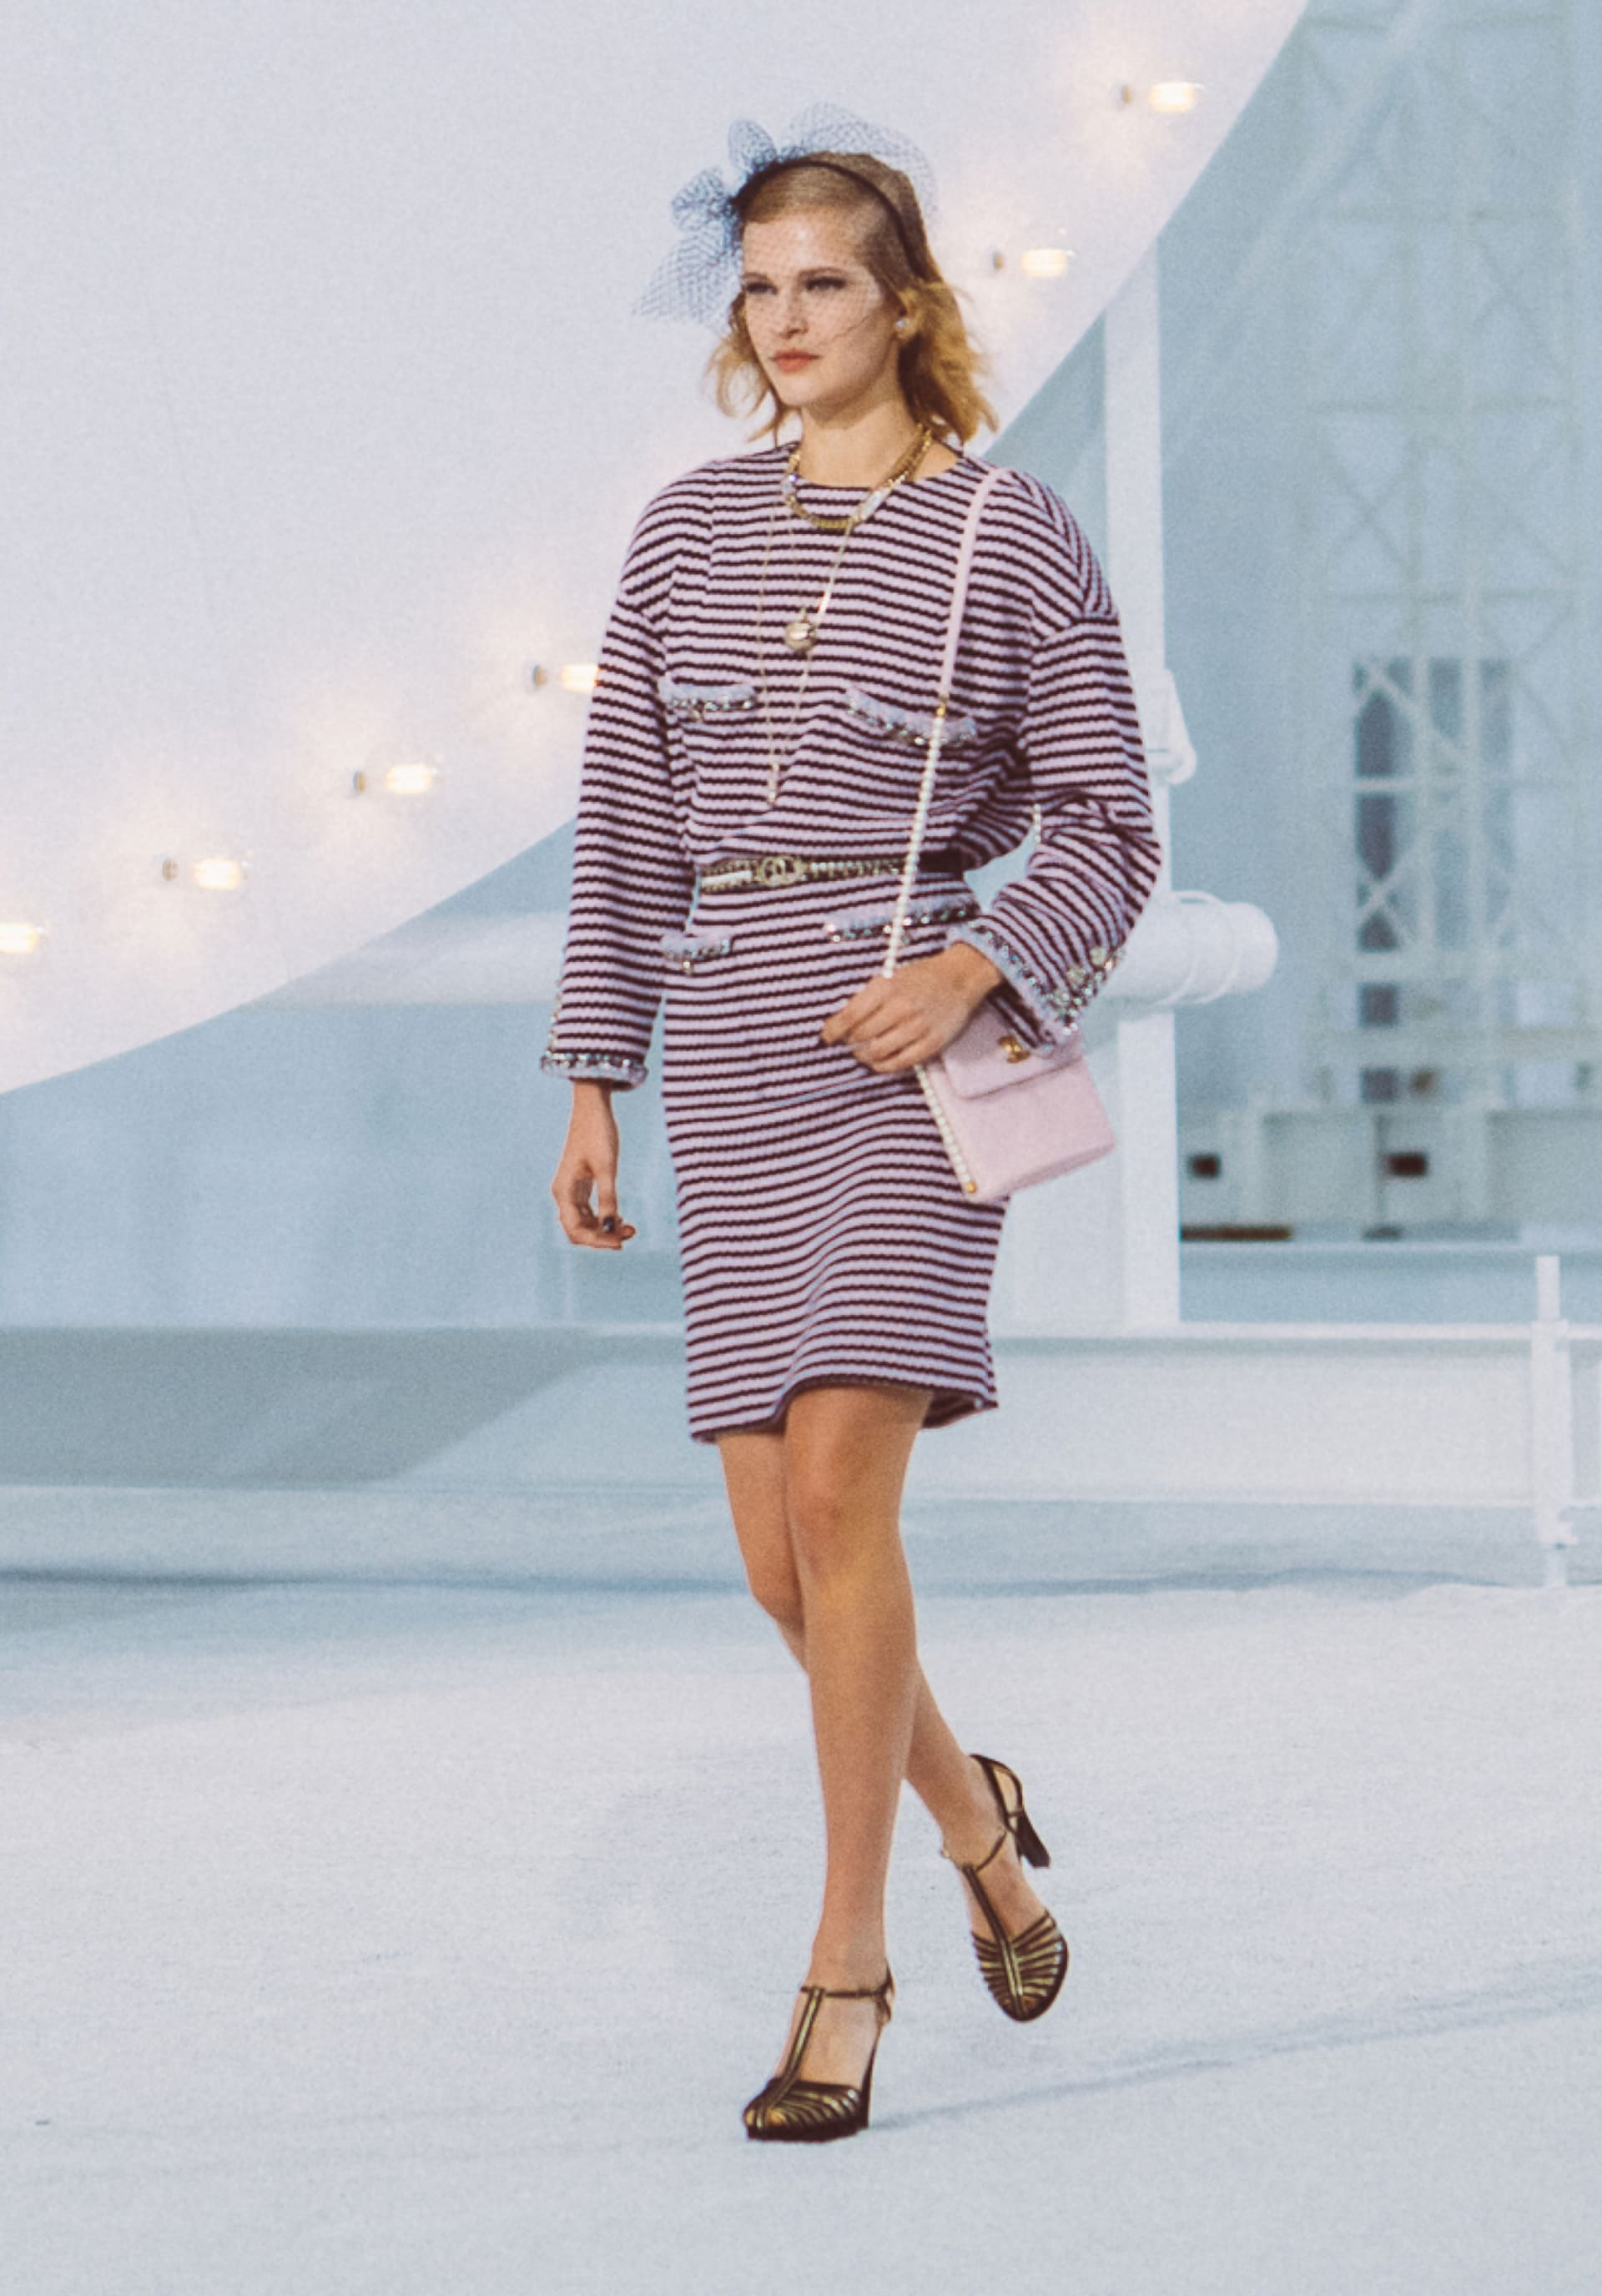 View 1 - Look13 - Spring-Summer 2021 - see full sized version